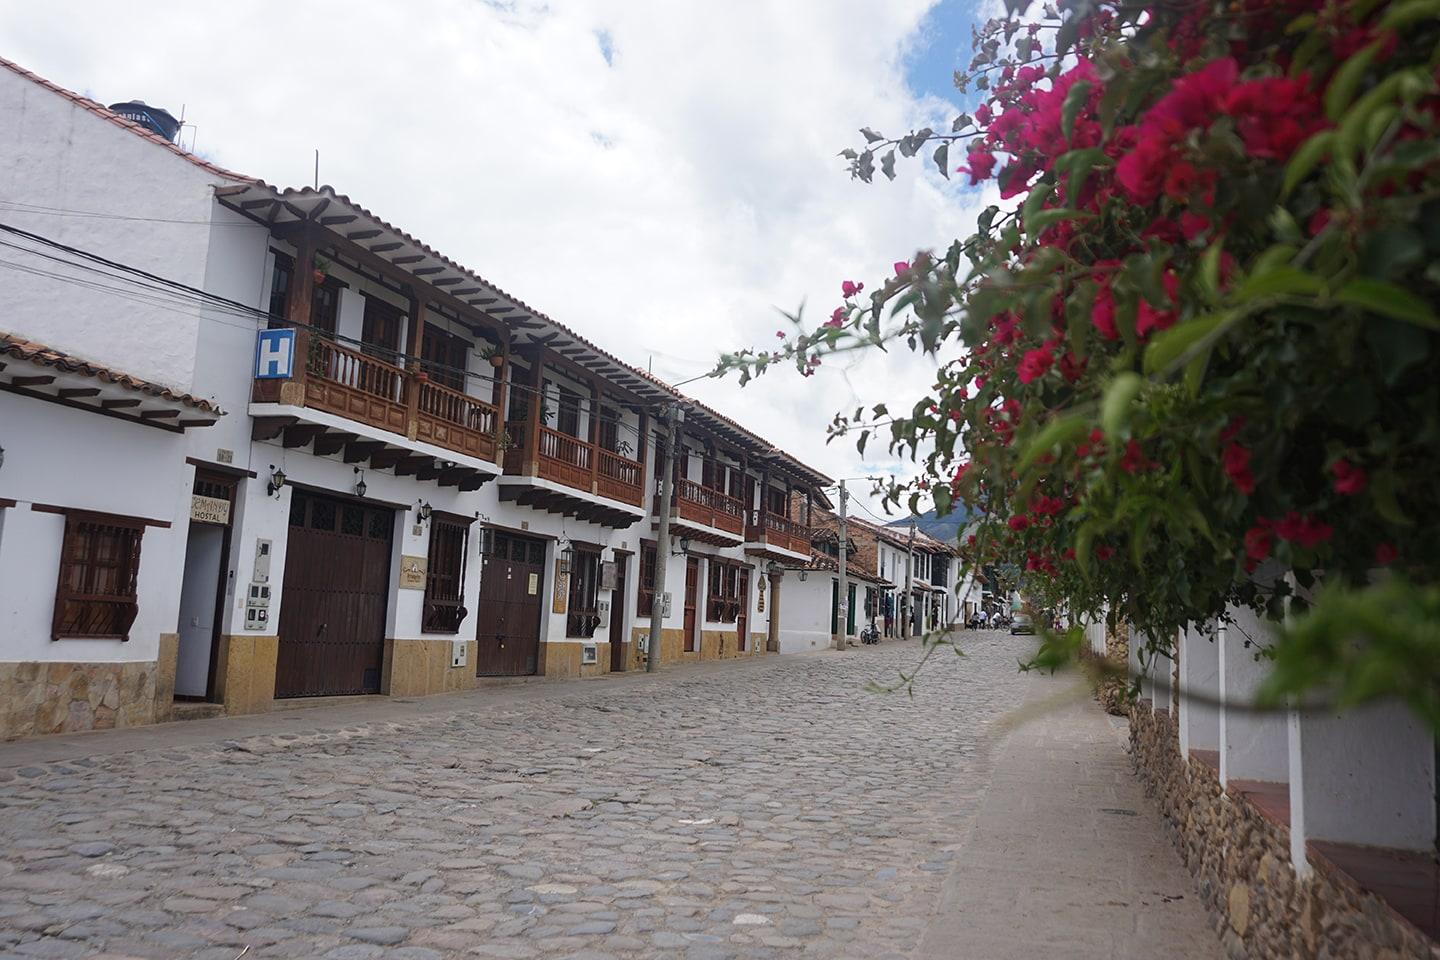 Wit dorp Villa de Leyva in Colombia